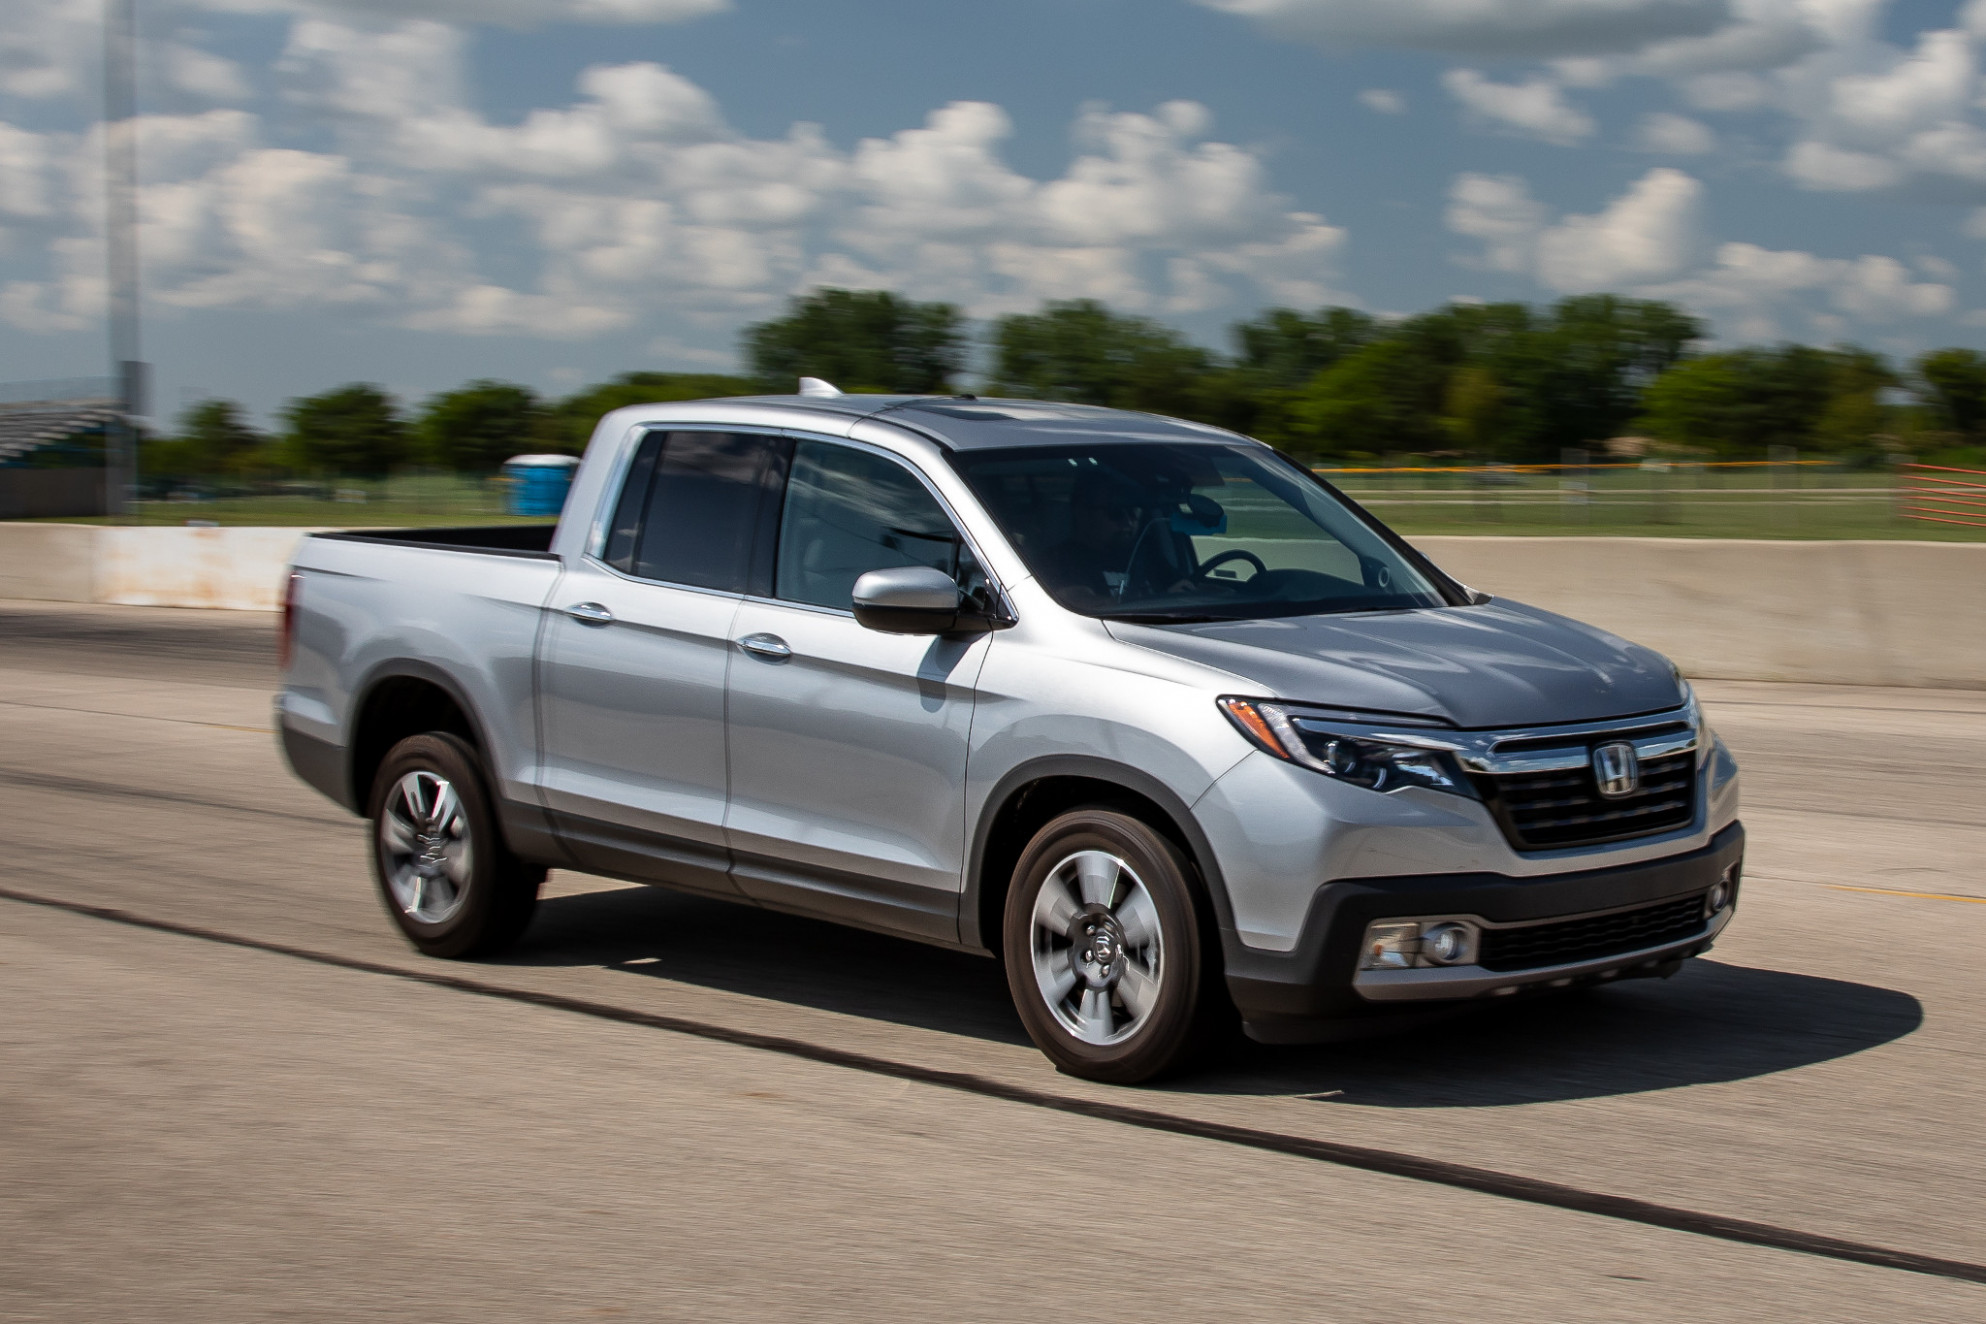 All the Pickup Truck News: Canyon and Ridgeline Reviewed, 8 ..